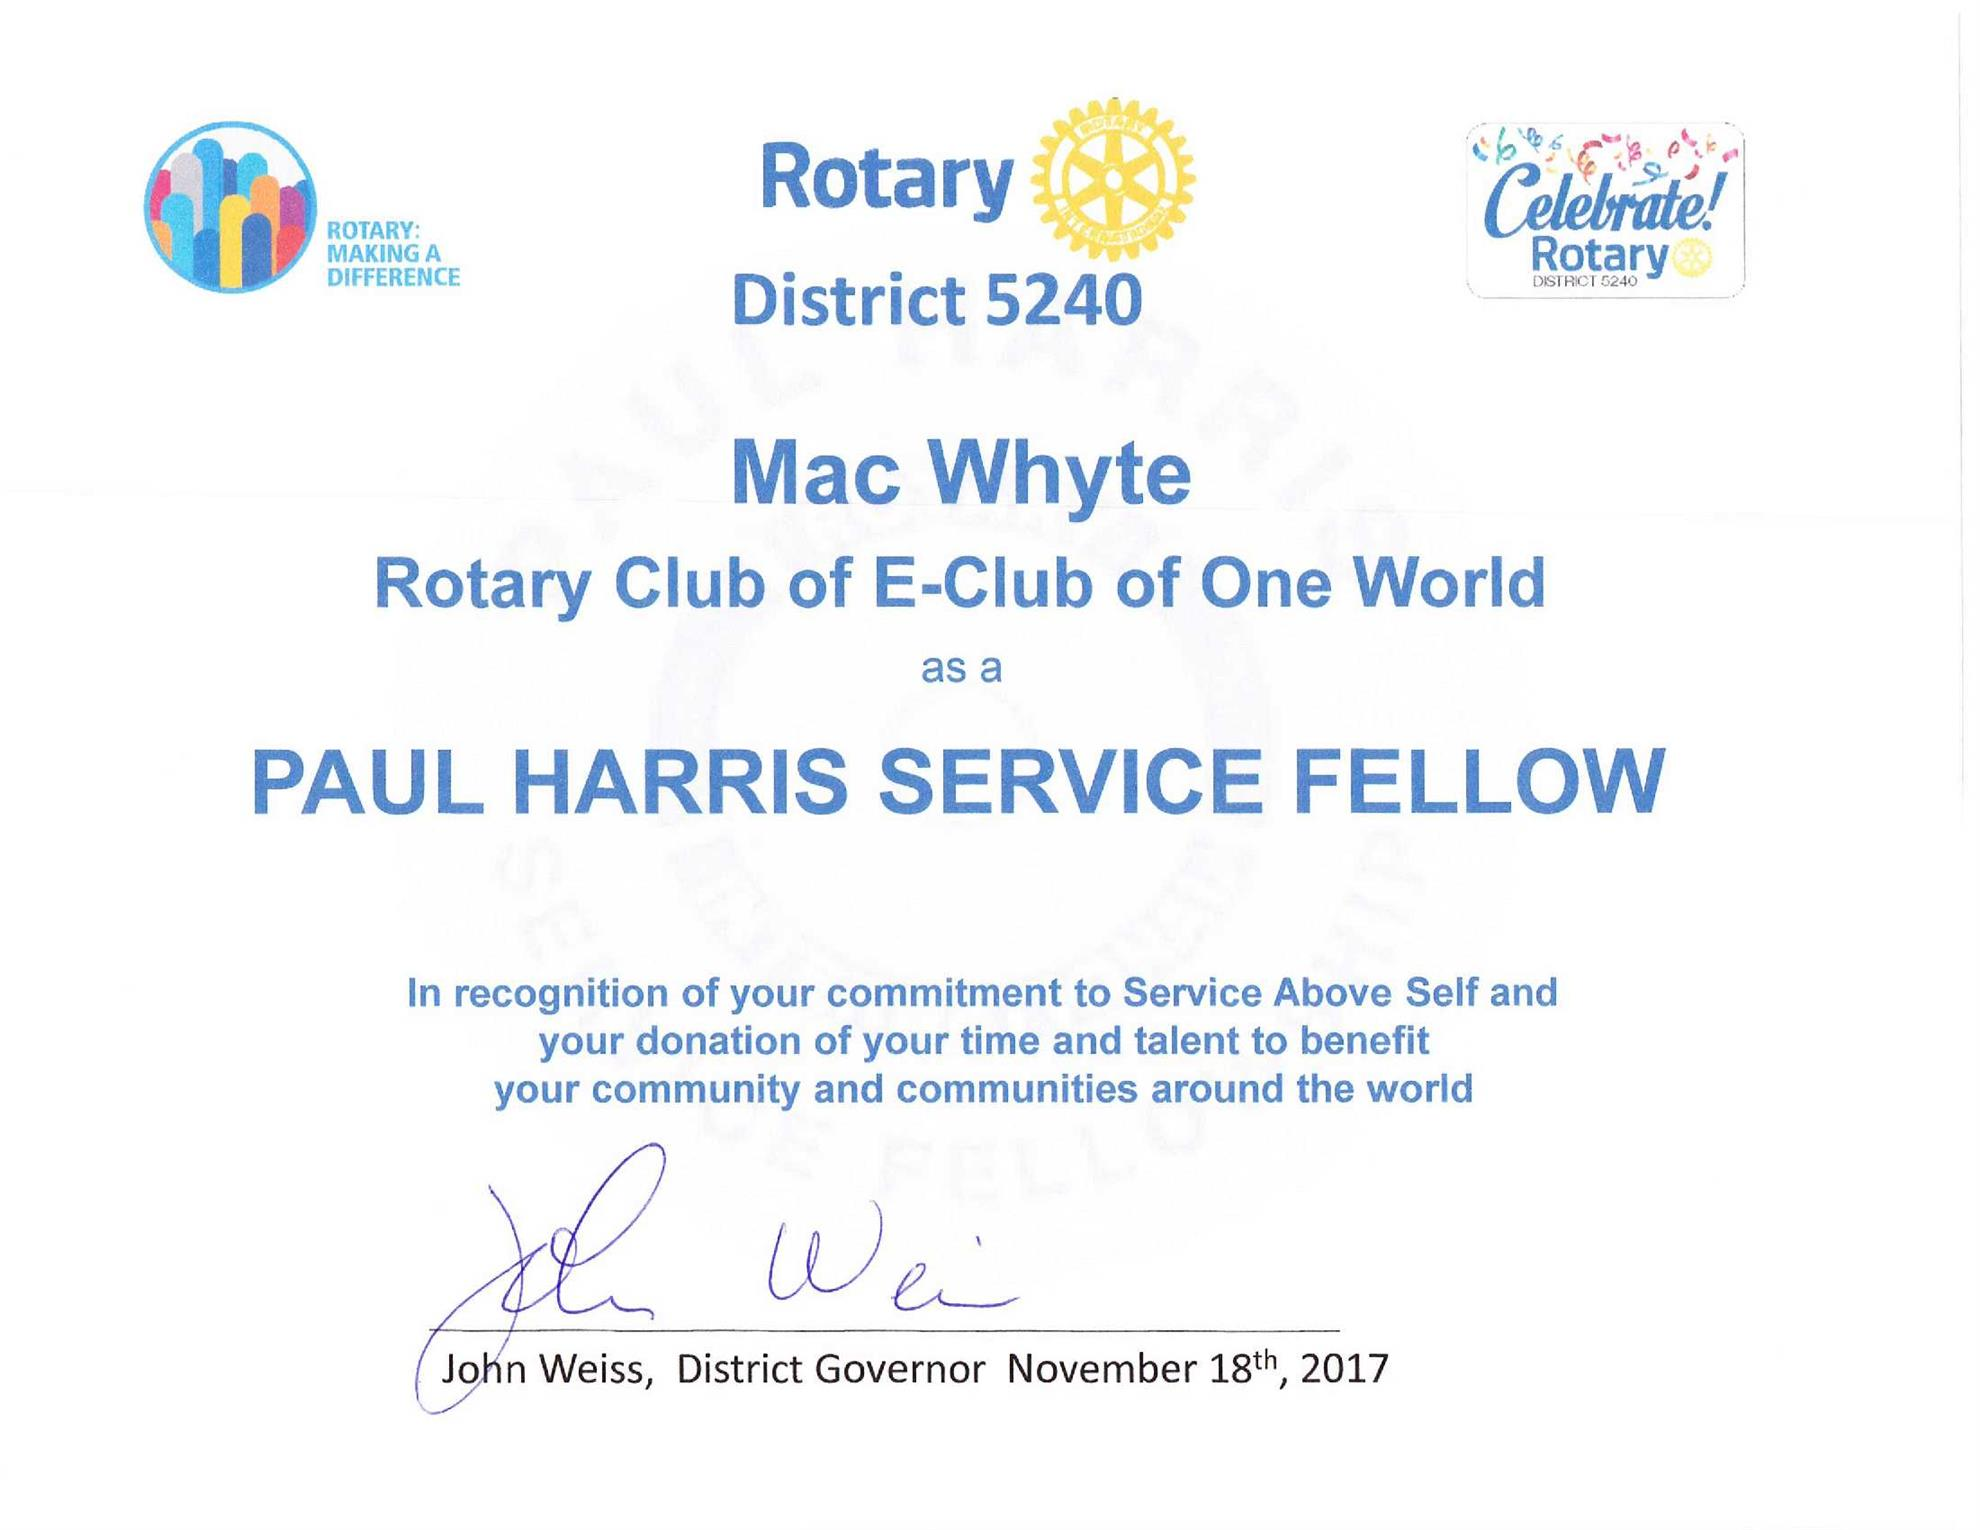 Stories rotary e club of one world d5240 we are rotarians making a difference buycottarizona Gallery